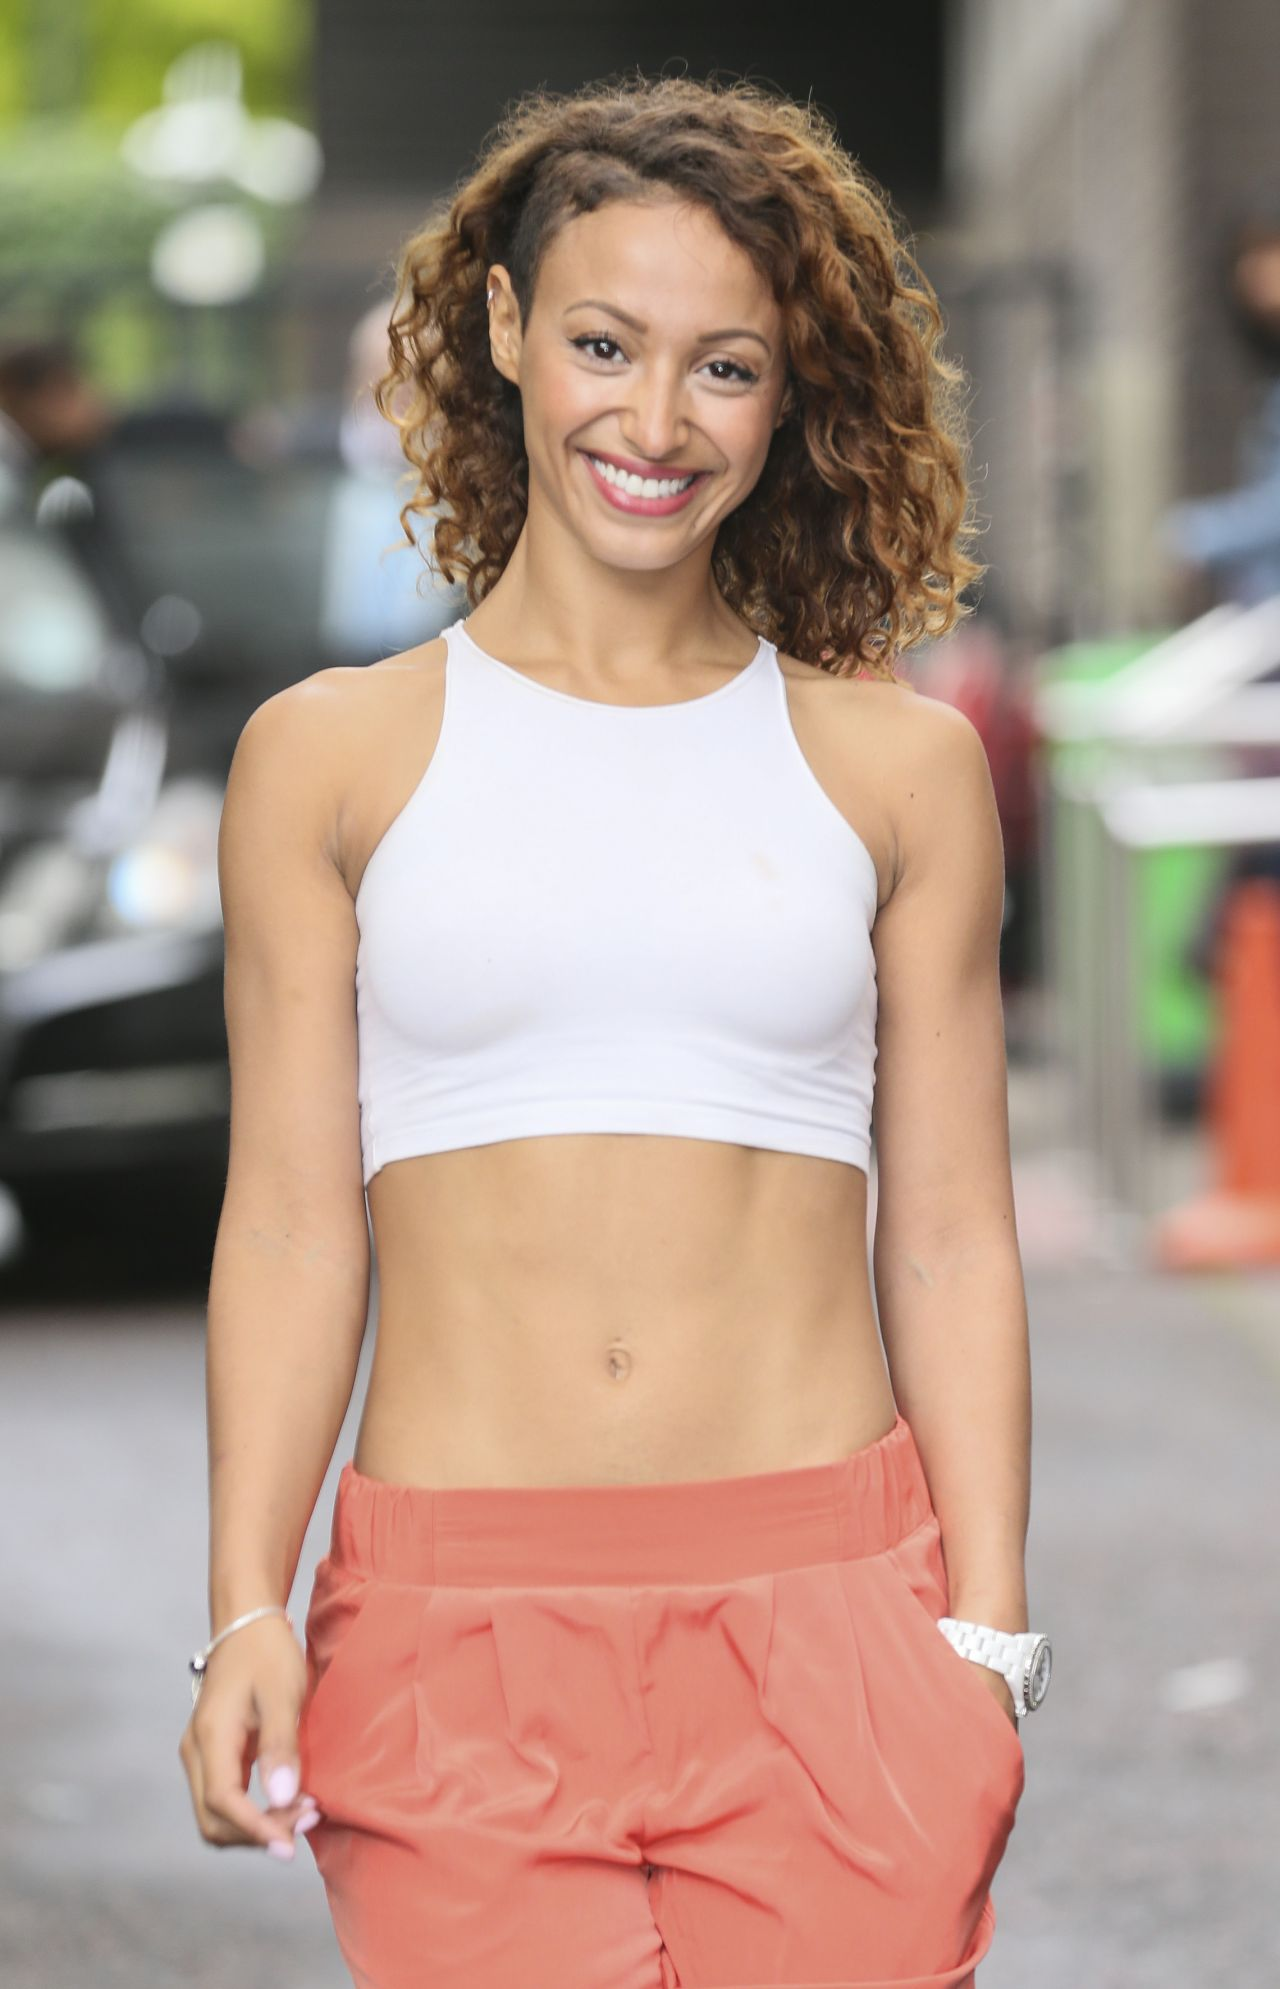 Amelle Berrabah at the ITV Studios in London - August 2014